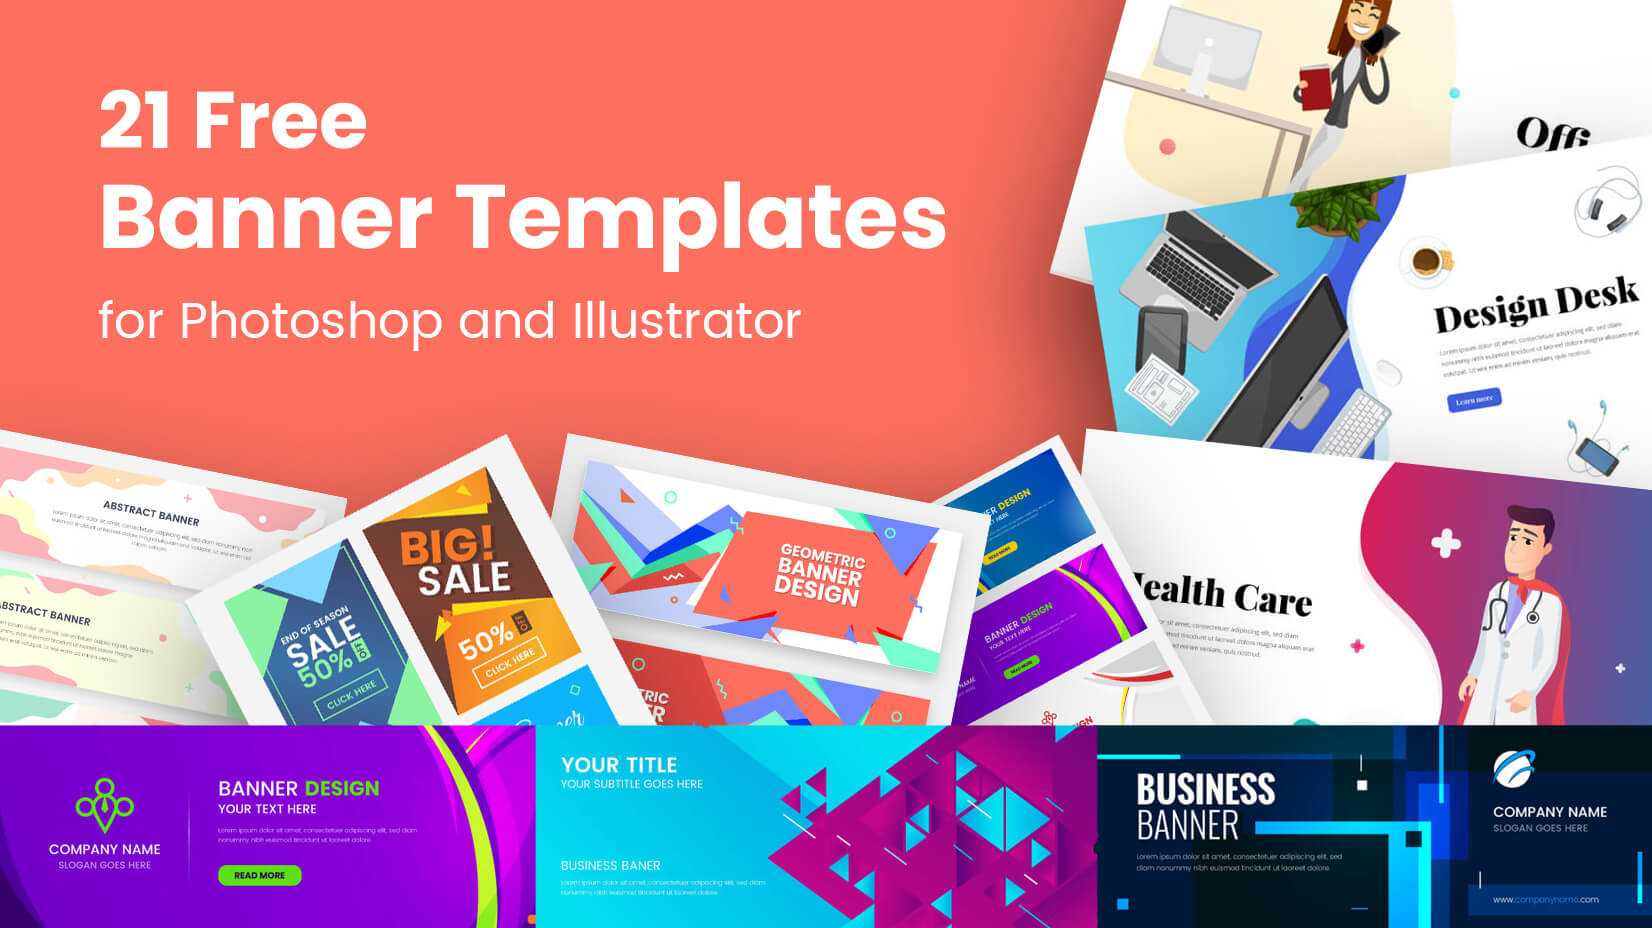 21 Free Banner Templates For Photoshop And Illustrator Inside Free Online Banner Templates